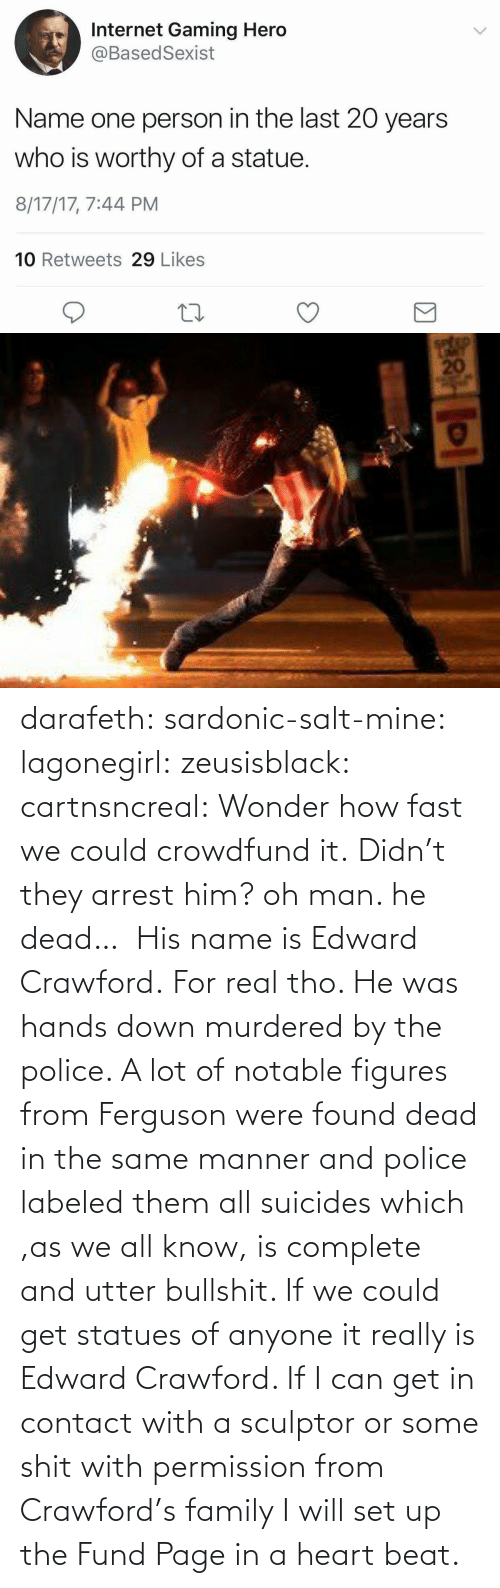 A Lot: darafeth: sardonic-salt-mine:  lagonegirl:  zeusisblack:  cartnsncreal:   Wonder how fast we could crowdfund it.    Didn't they arrest him?  oh man. he dead…   His name is Edward Crawford.   For real tho. He was hands down murdered by the police. A lot of notable figures from Ferguson were found dead in the same manner and police labeled them all suicides which ,as we all know, is complete and utter bullshit.  If we could get statues of anyone it really is Edward Crawford. If I can get in contact with a sculptor or some shit with permission from Crawford's family I will set up the Fund Page in a heart beat.